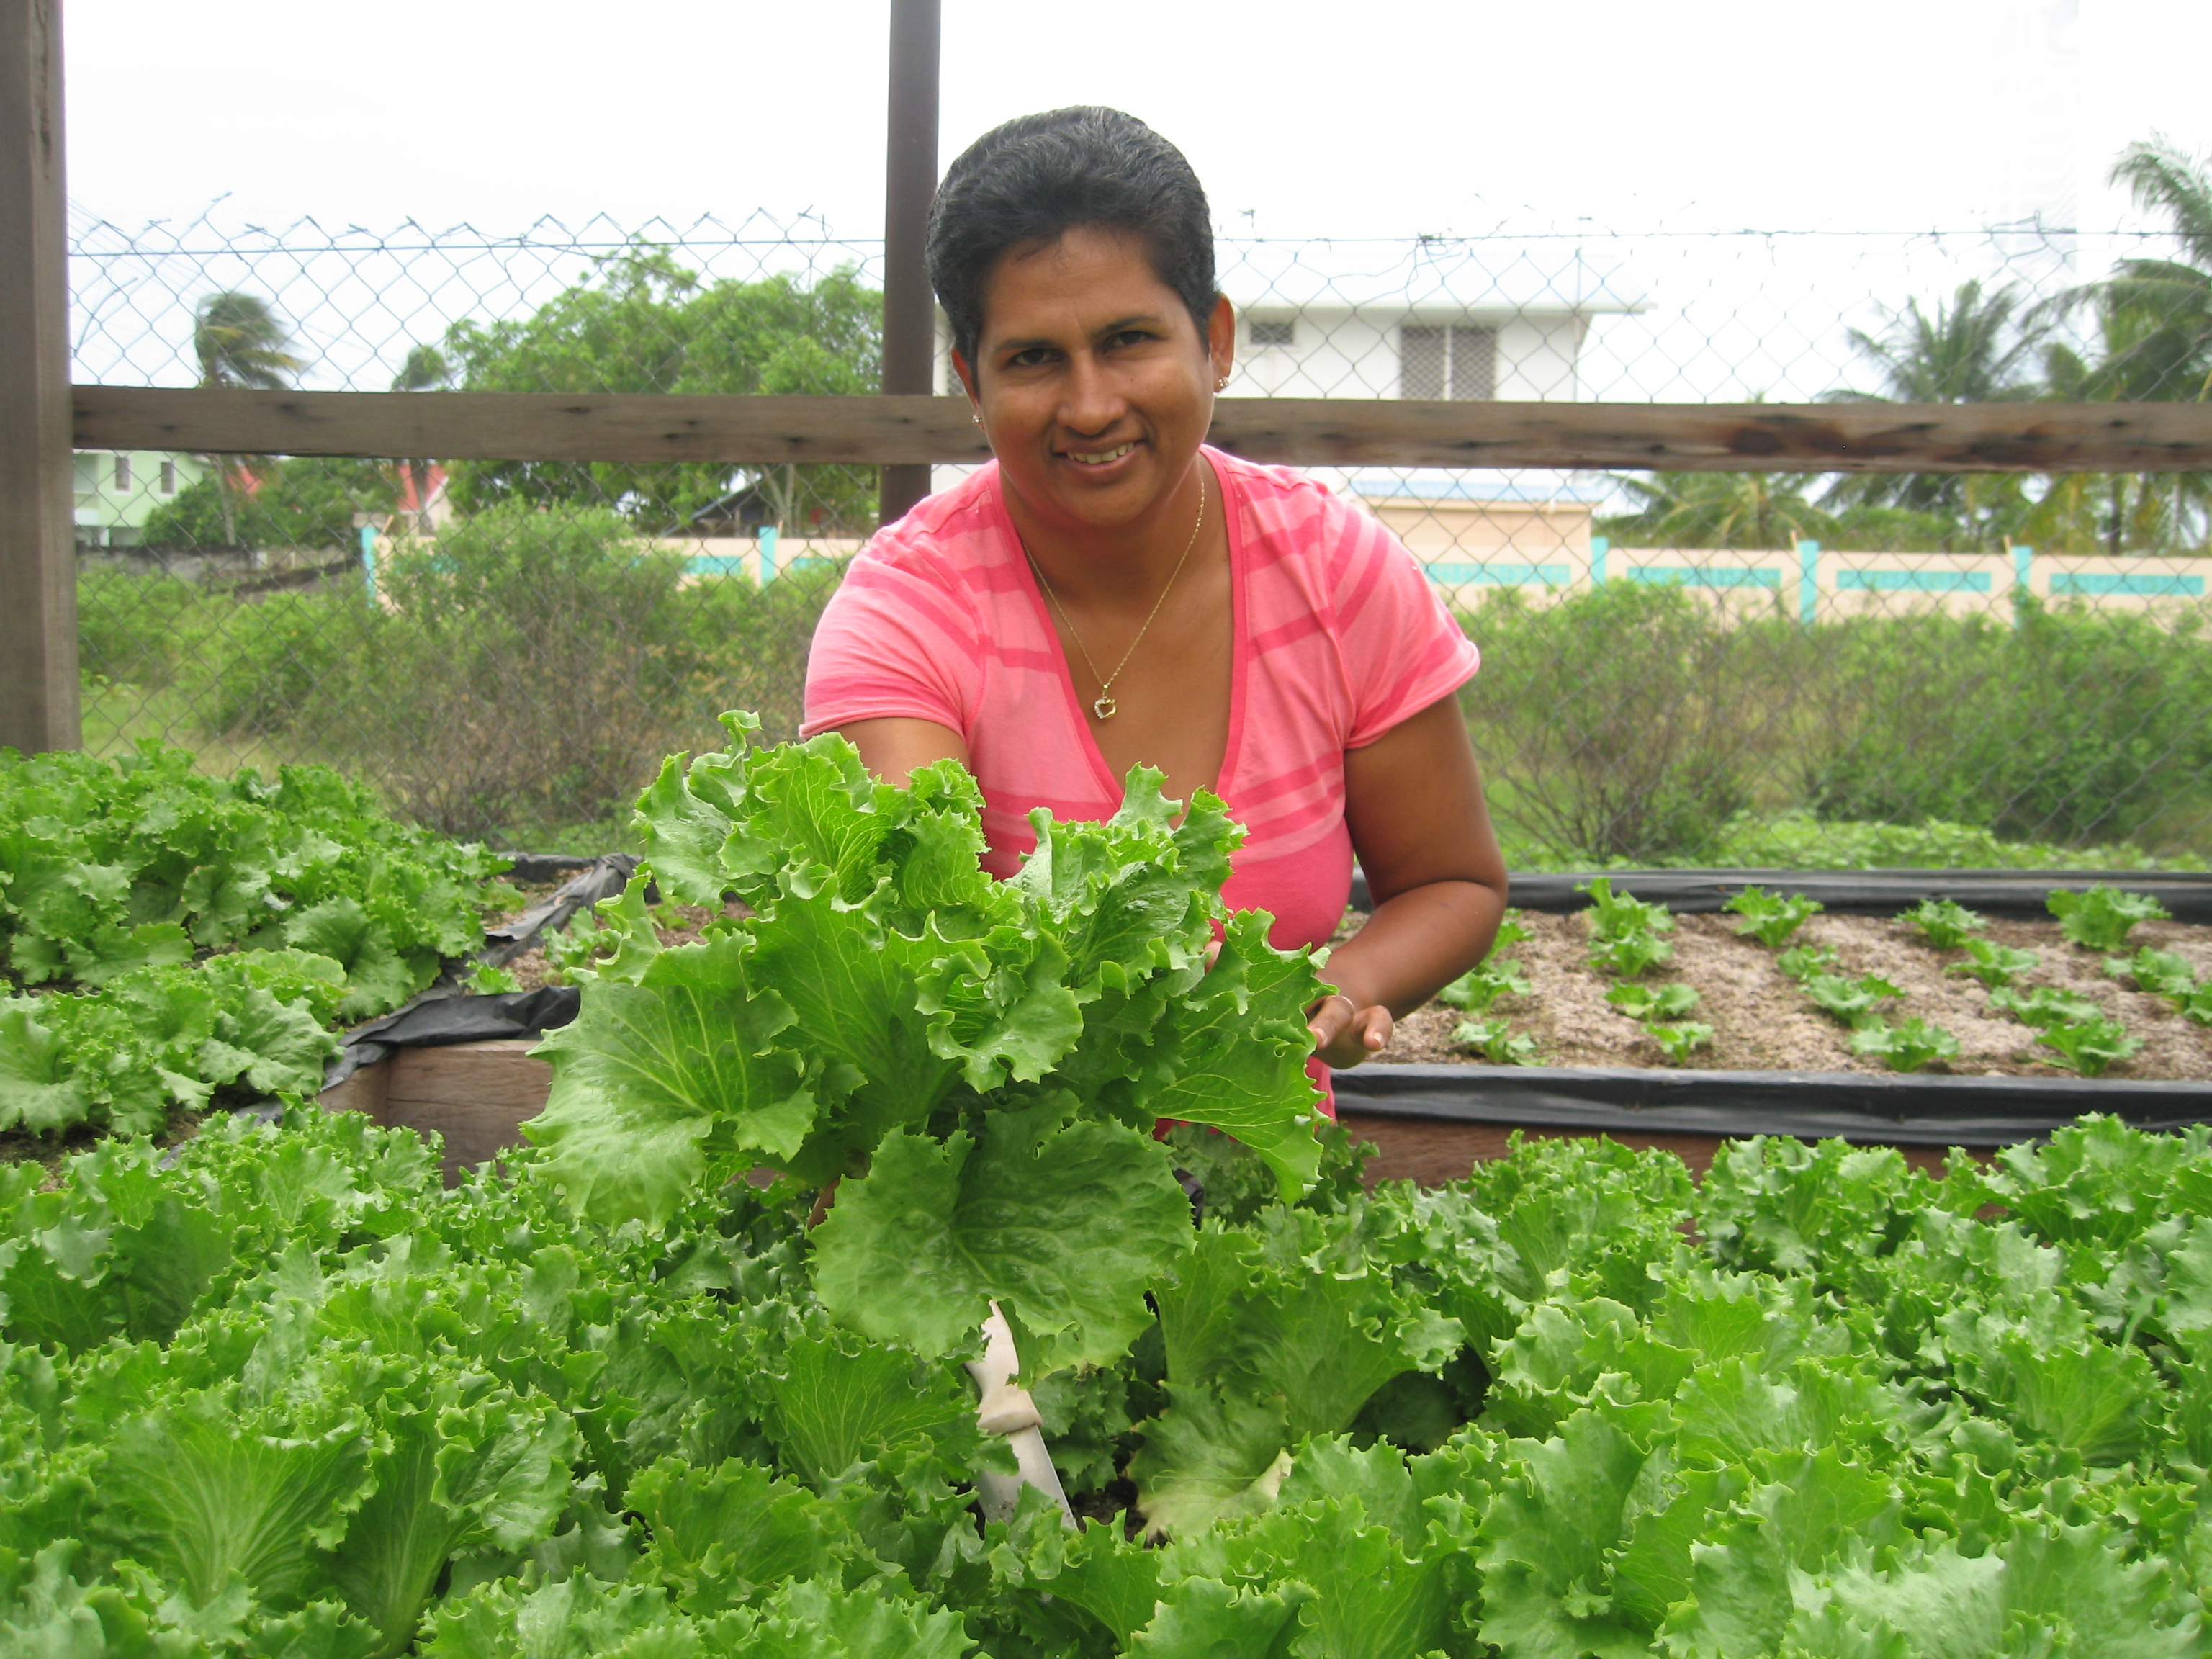 Harvesting Lettuce in Region 4